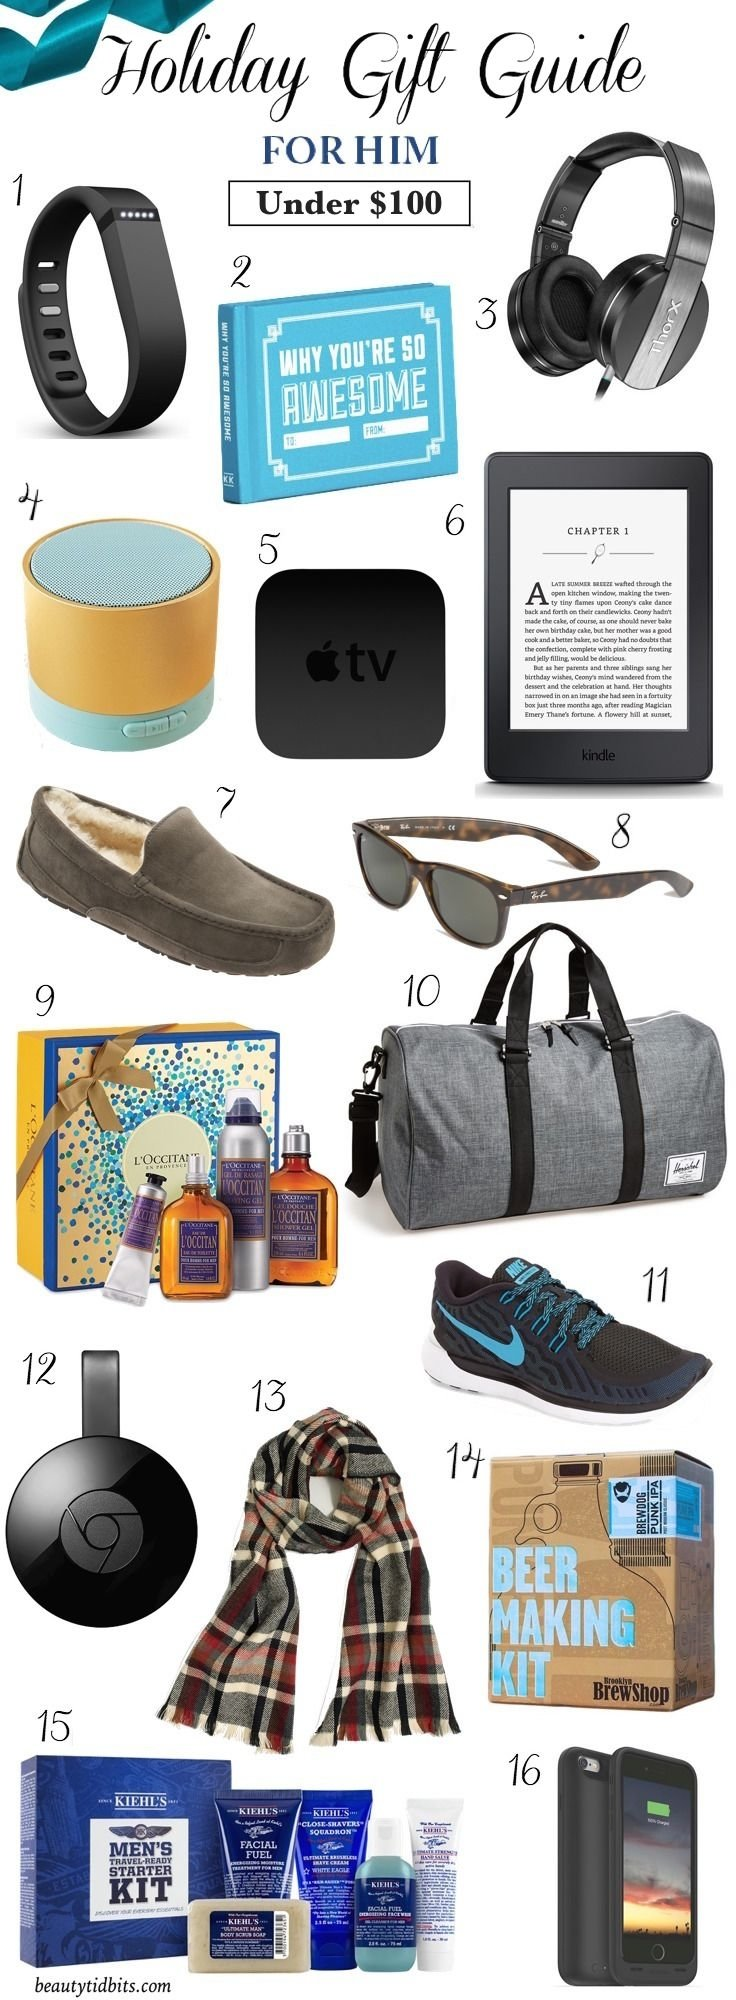 10 Trendy Unique Gift Ideas For Men Who Have Everything 126 best holiday gift giving images on pinterest christmas 8 2021